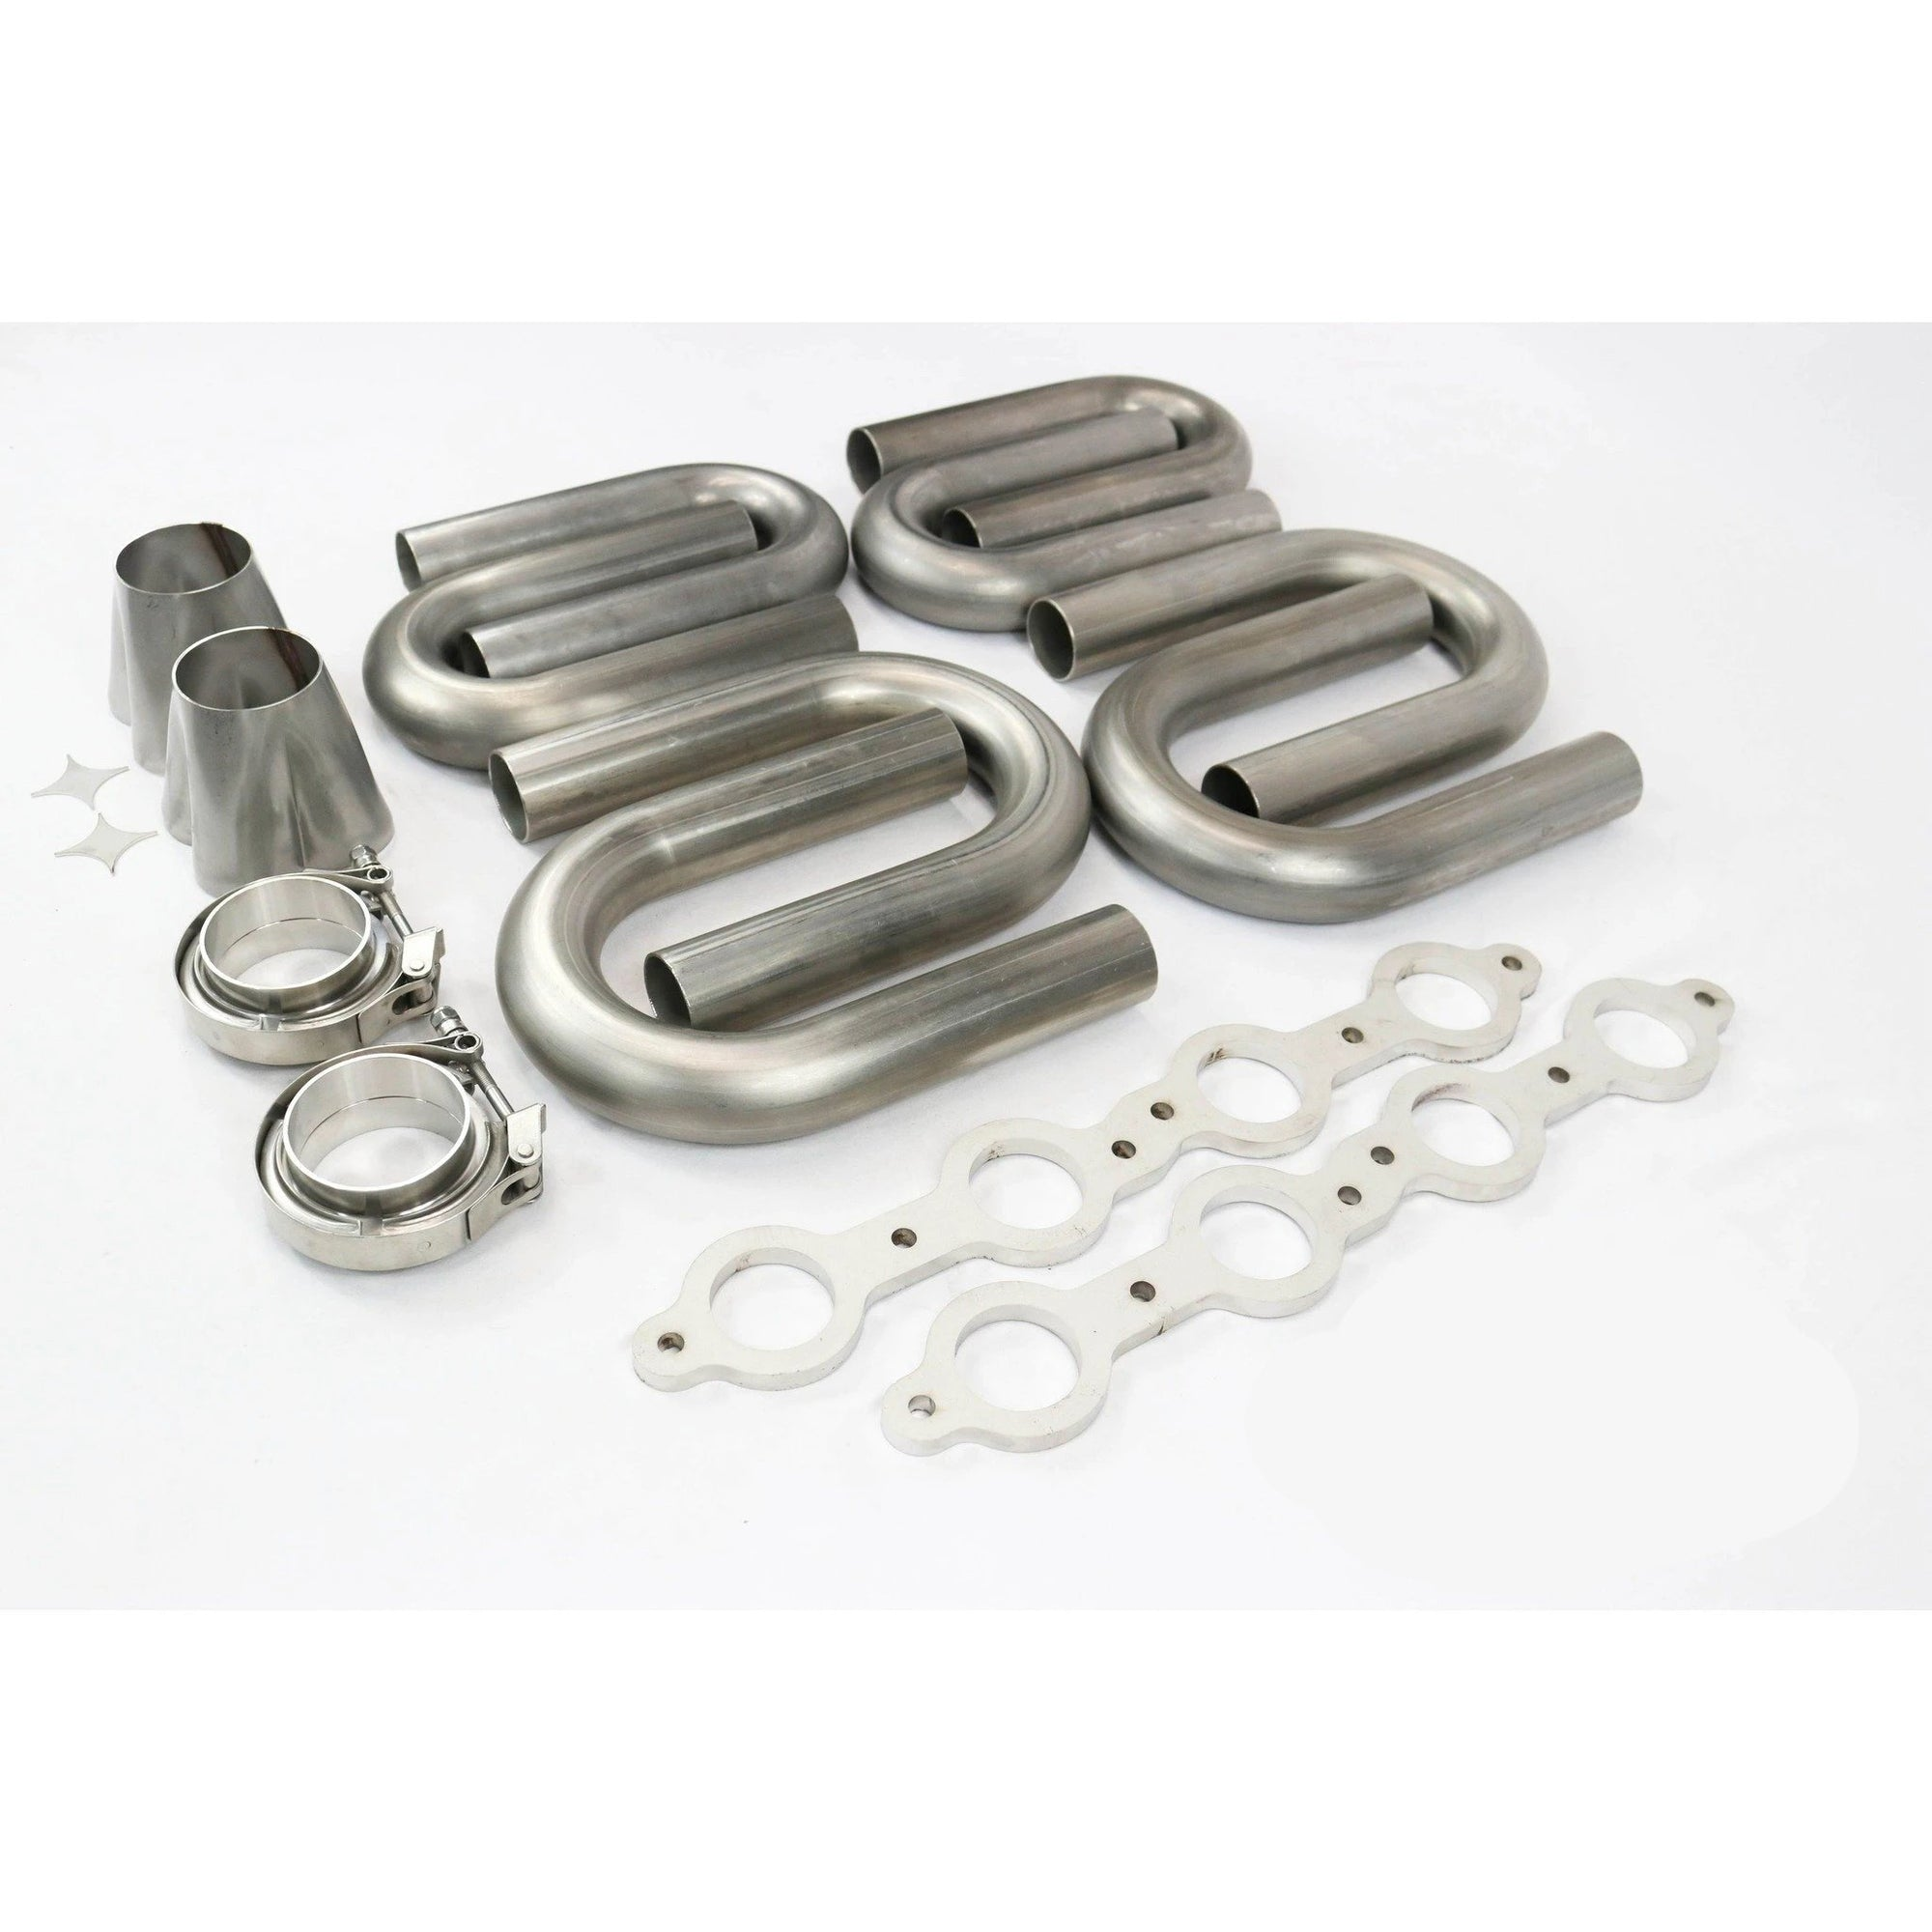 "Motion Raceworks LS1 1.750"" Primary 304 Stainless Steel Turbo Header Kit-Kit-Motion Raceworks"